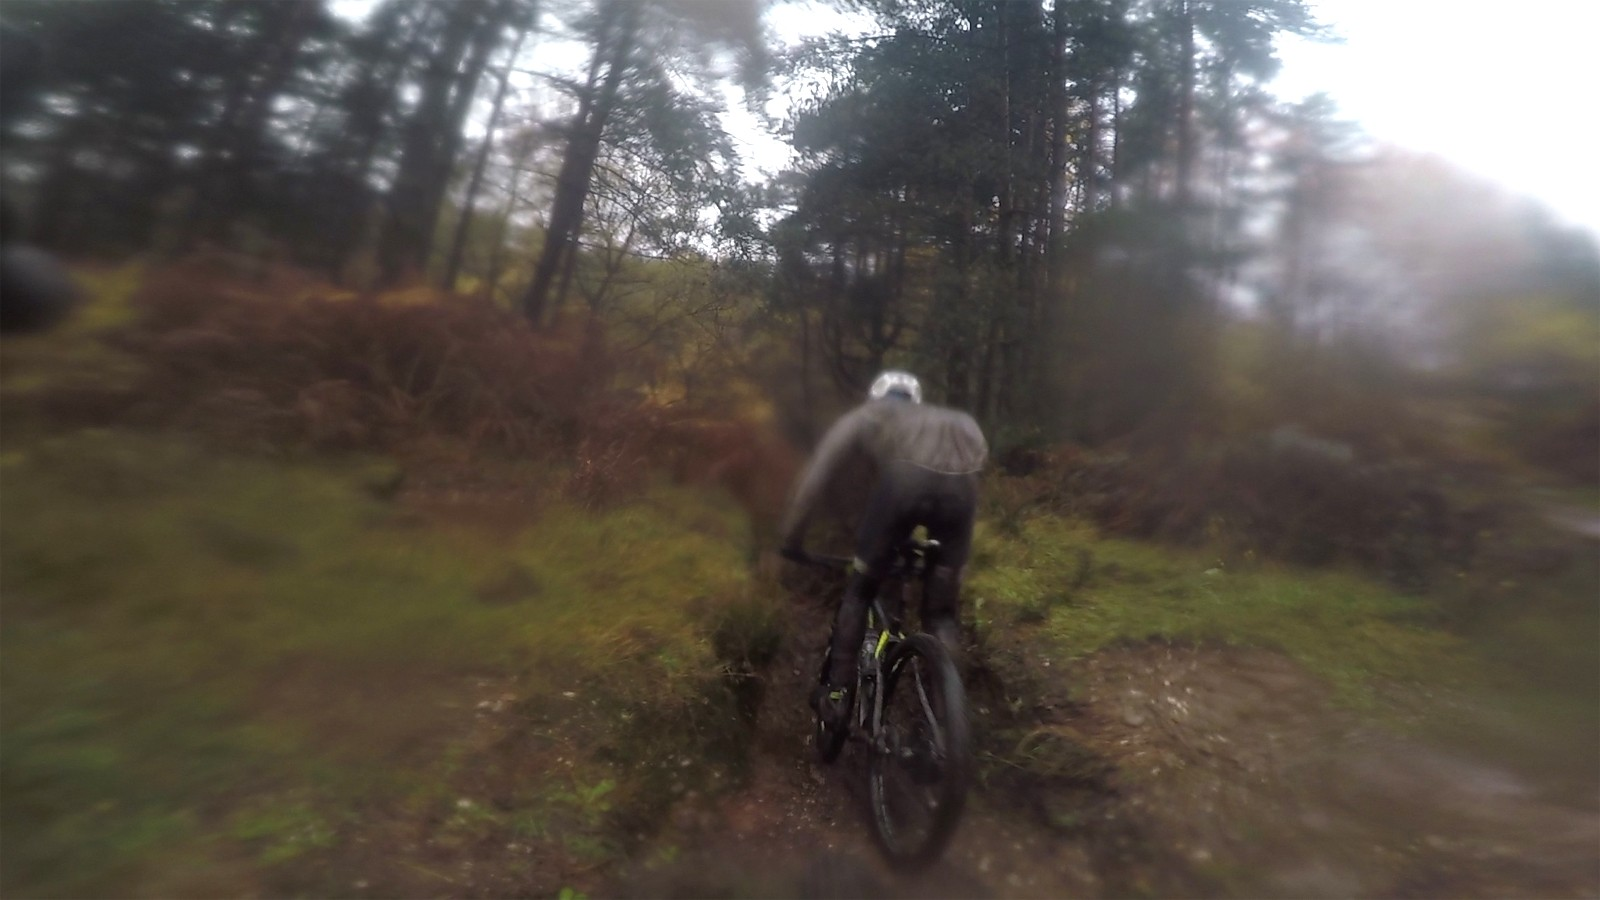 The route through Cannock Chase was remarkably technical for a gravel ride